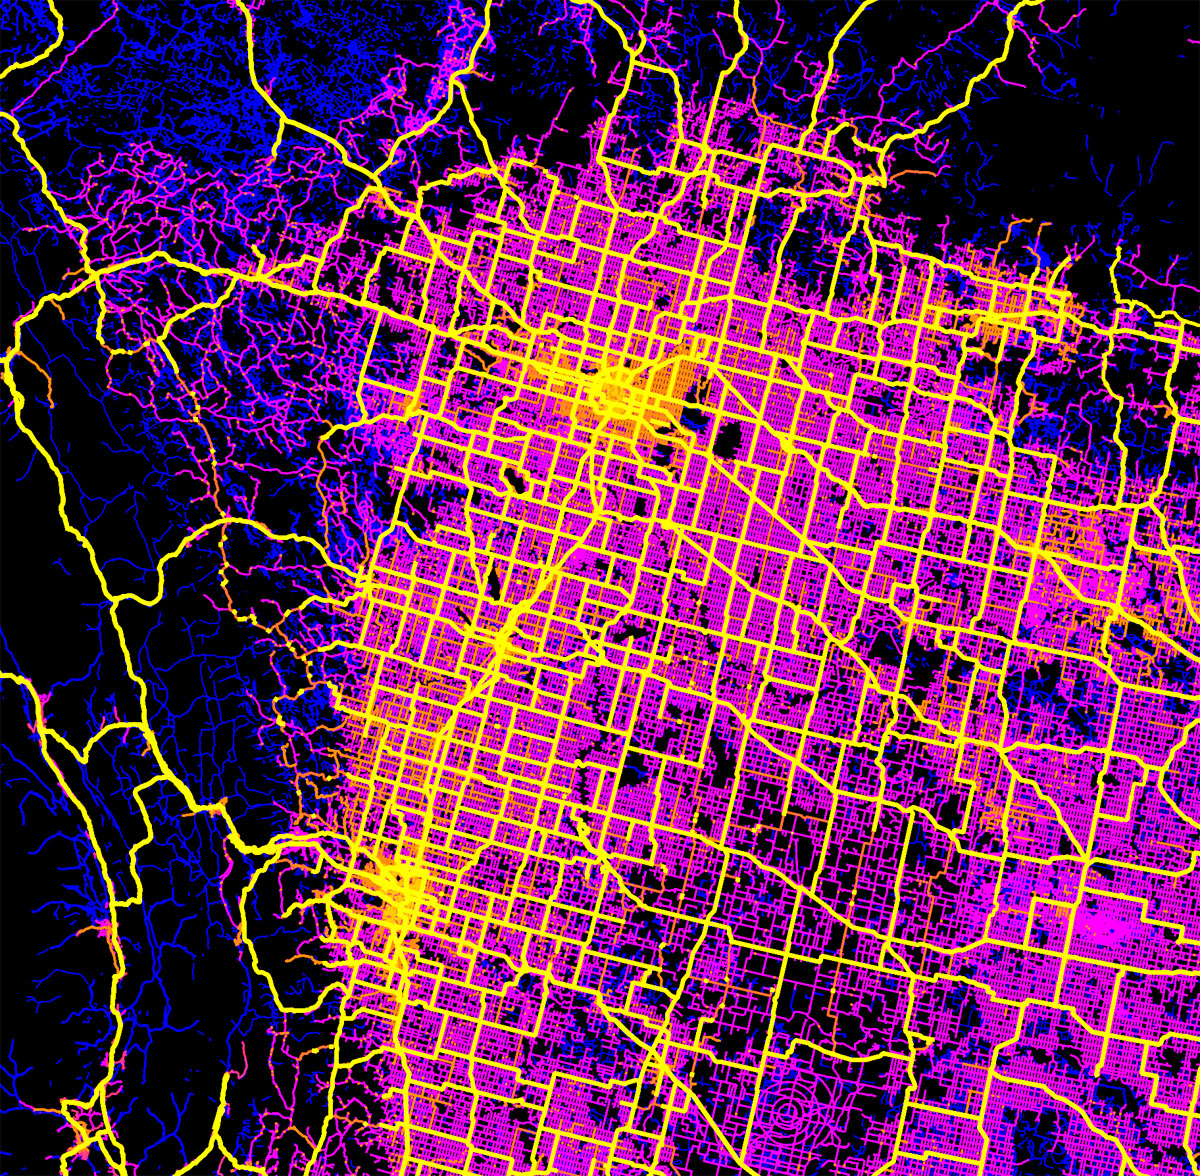 canada mapped by trails roads streets and highways by robbi bishop taylor 4 Canada Mapped by Trails, Roads, Streets and Highways